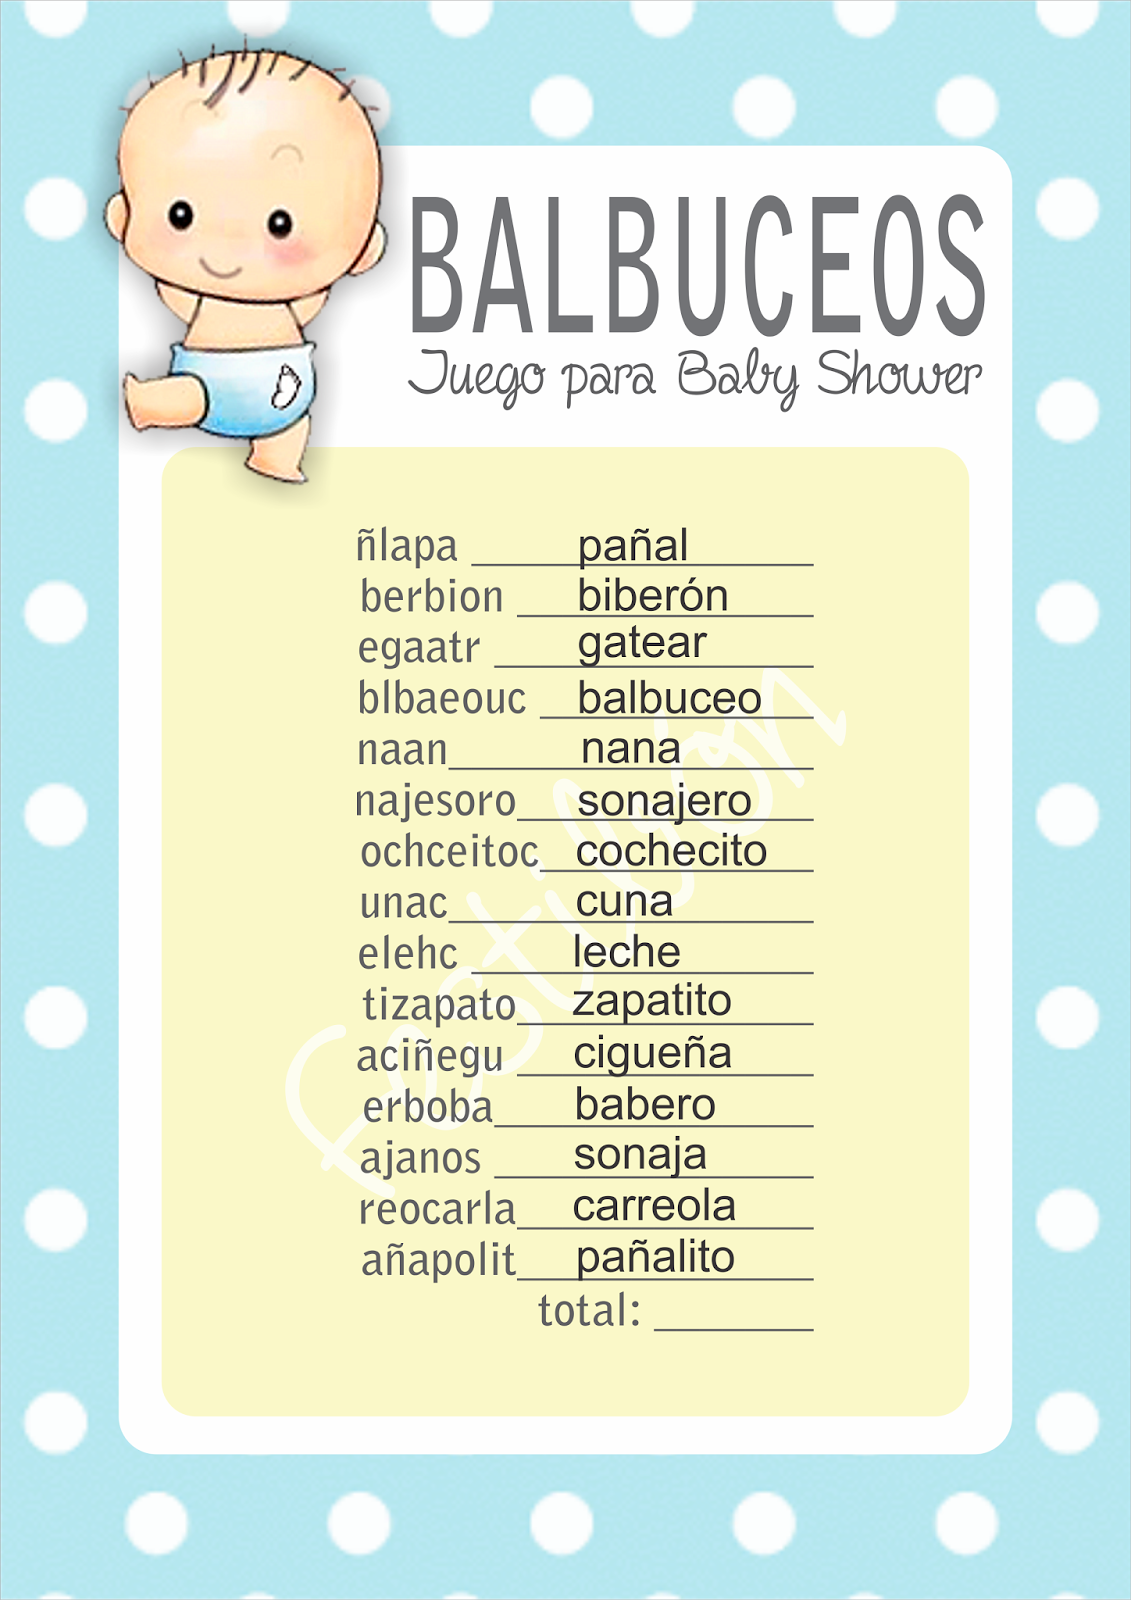 about juegos baby on pinterest juegos para baby shower baby showers